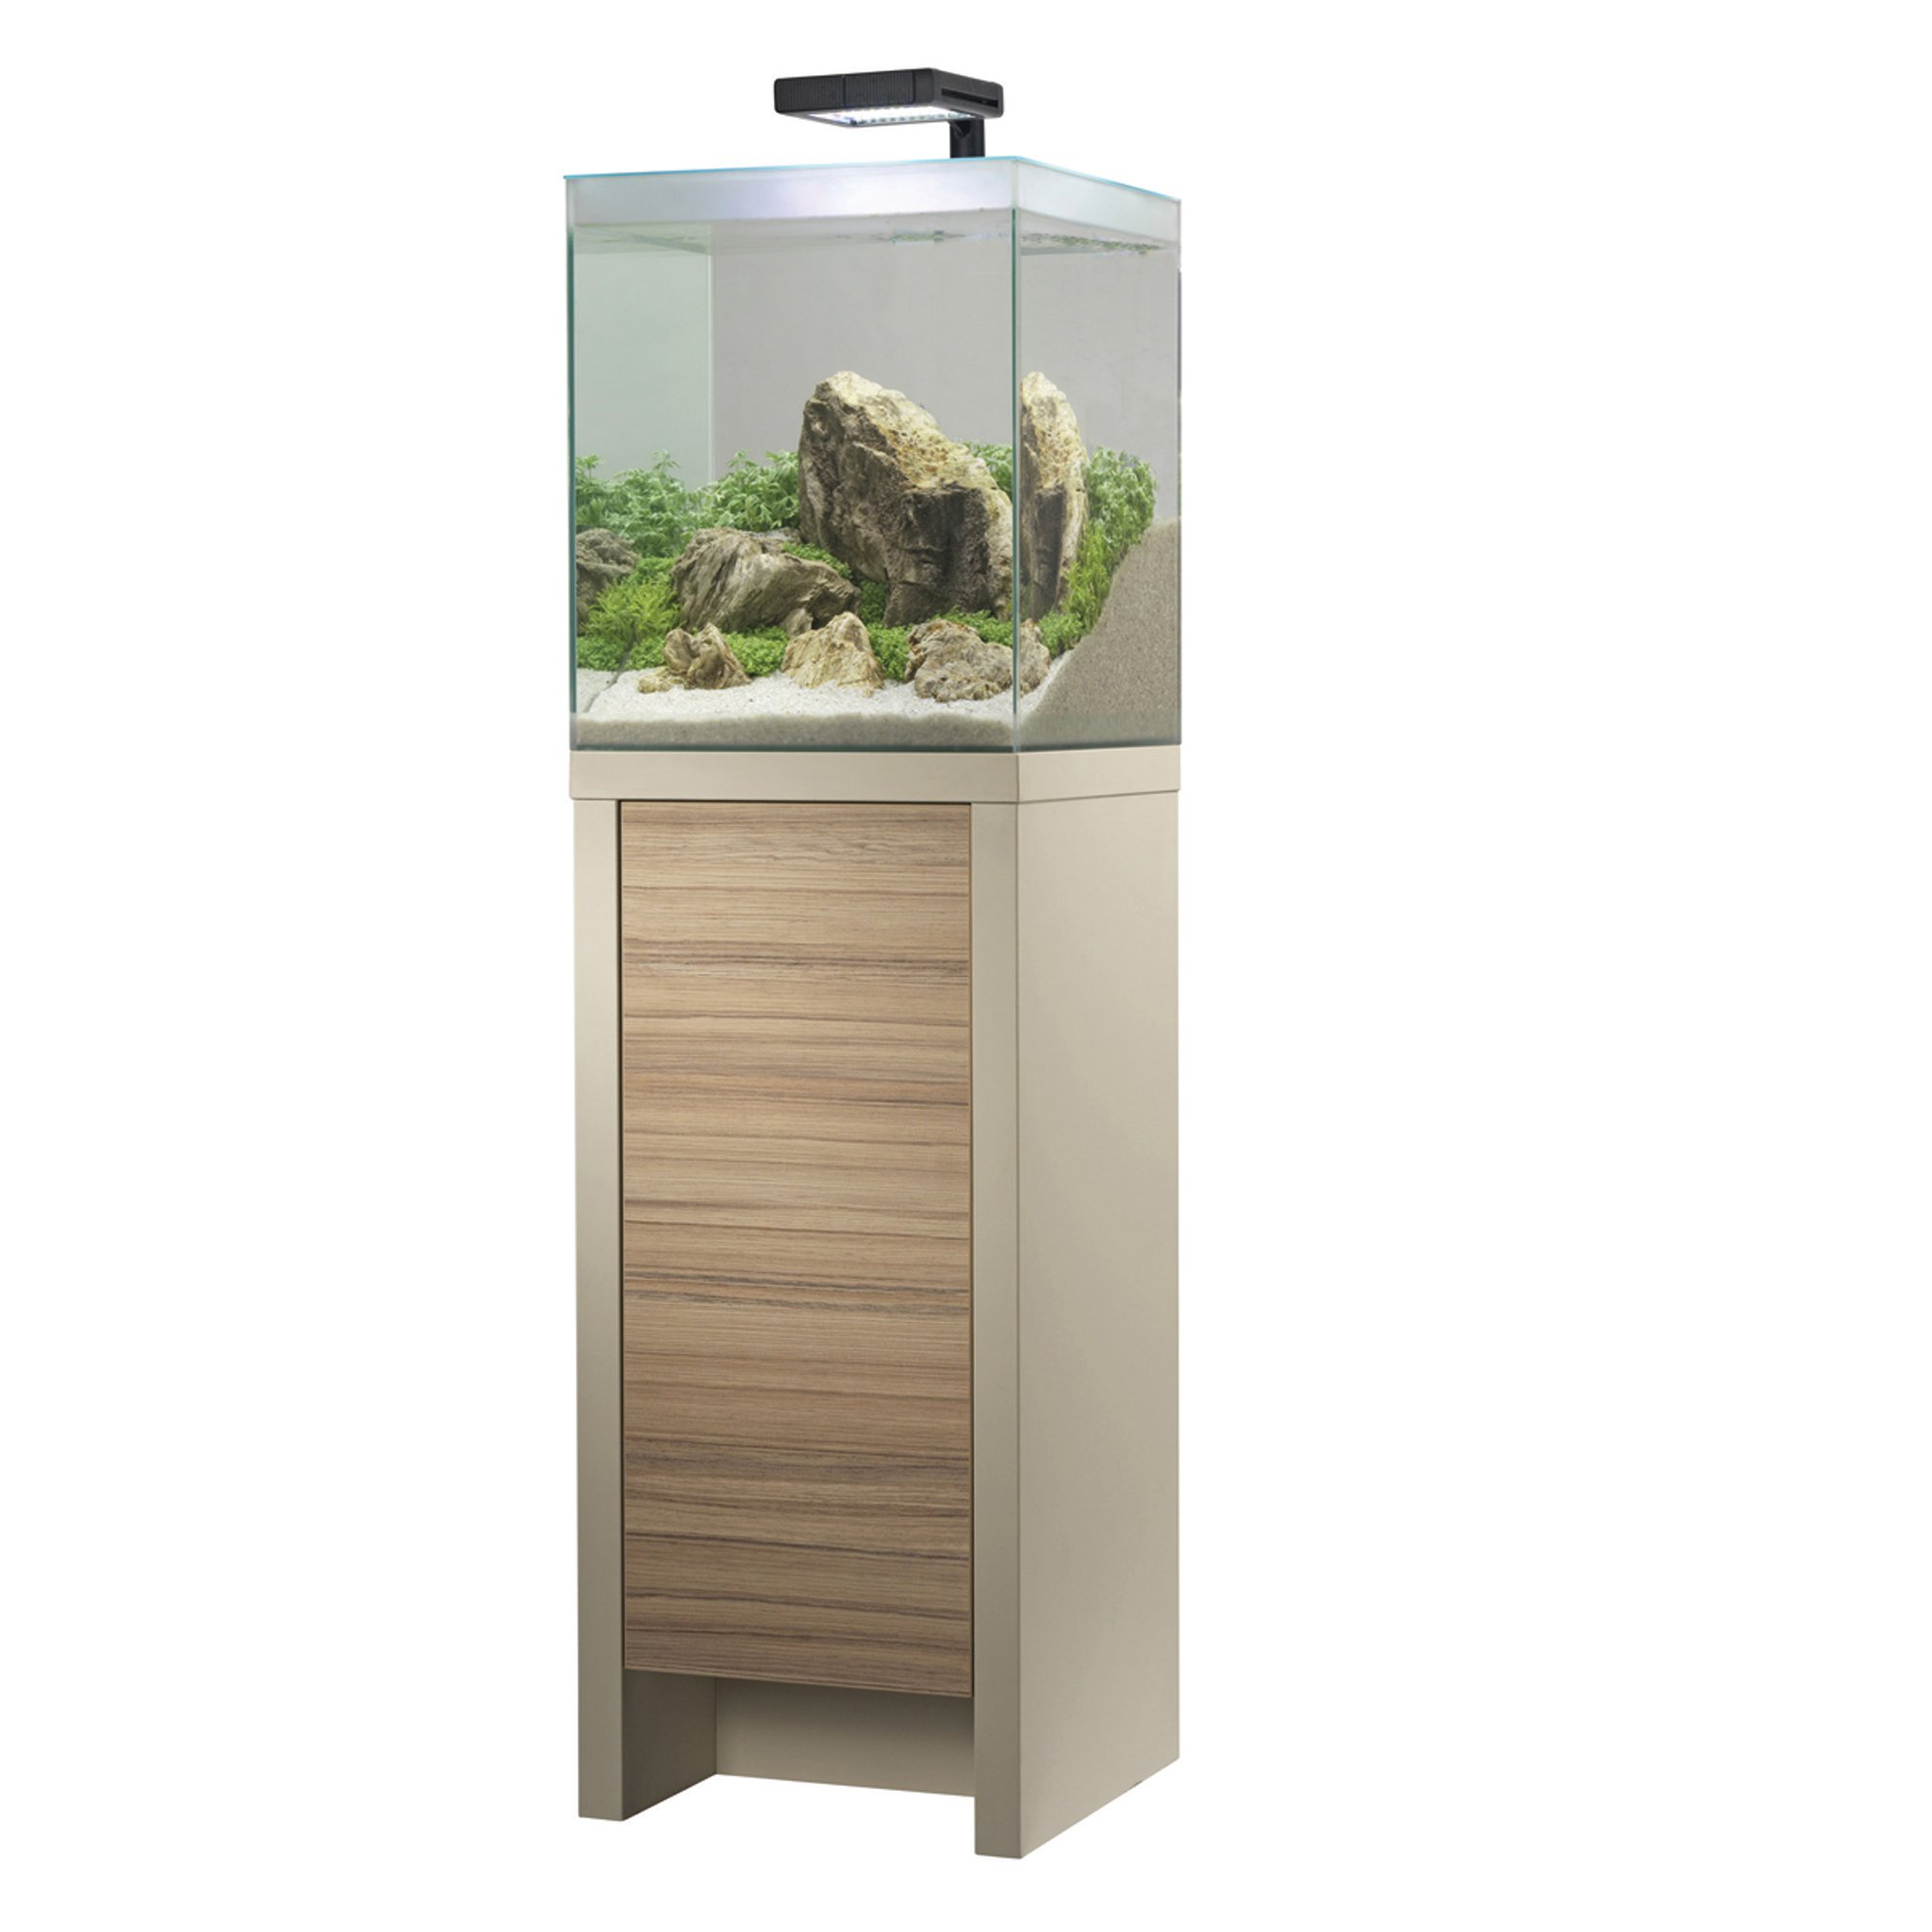 Fluval freshwater f35 aquarium set petco - Meuble pour aquarium 60l ...